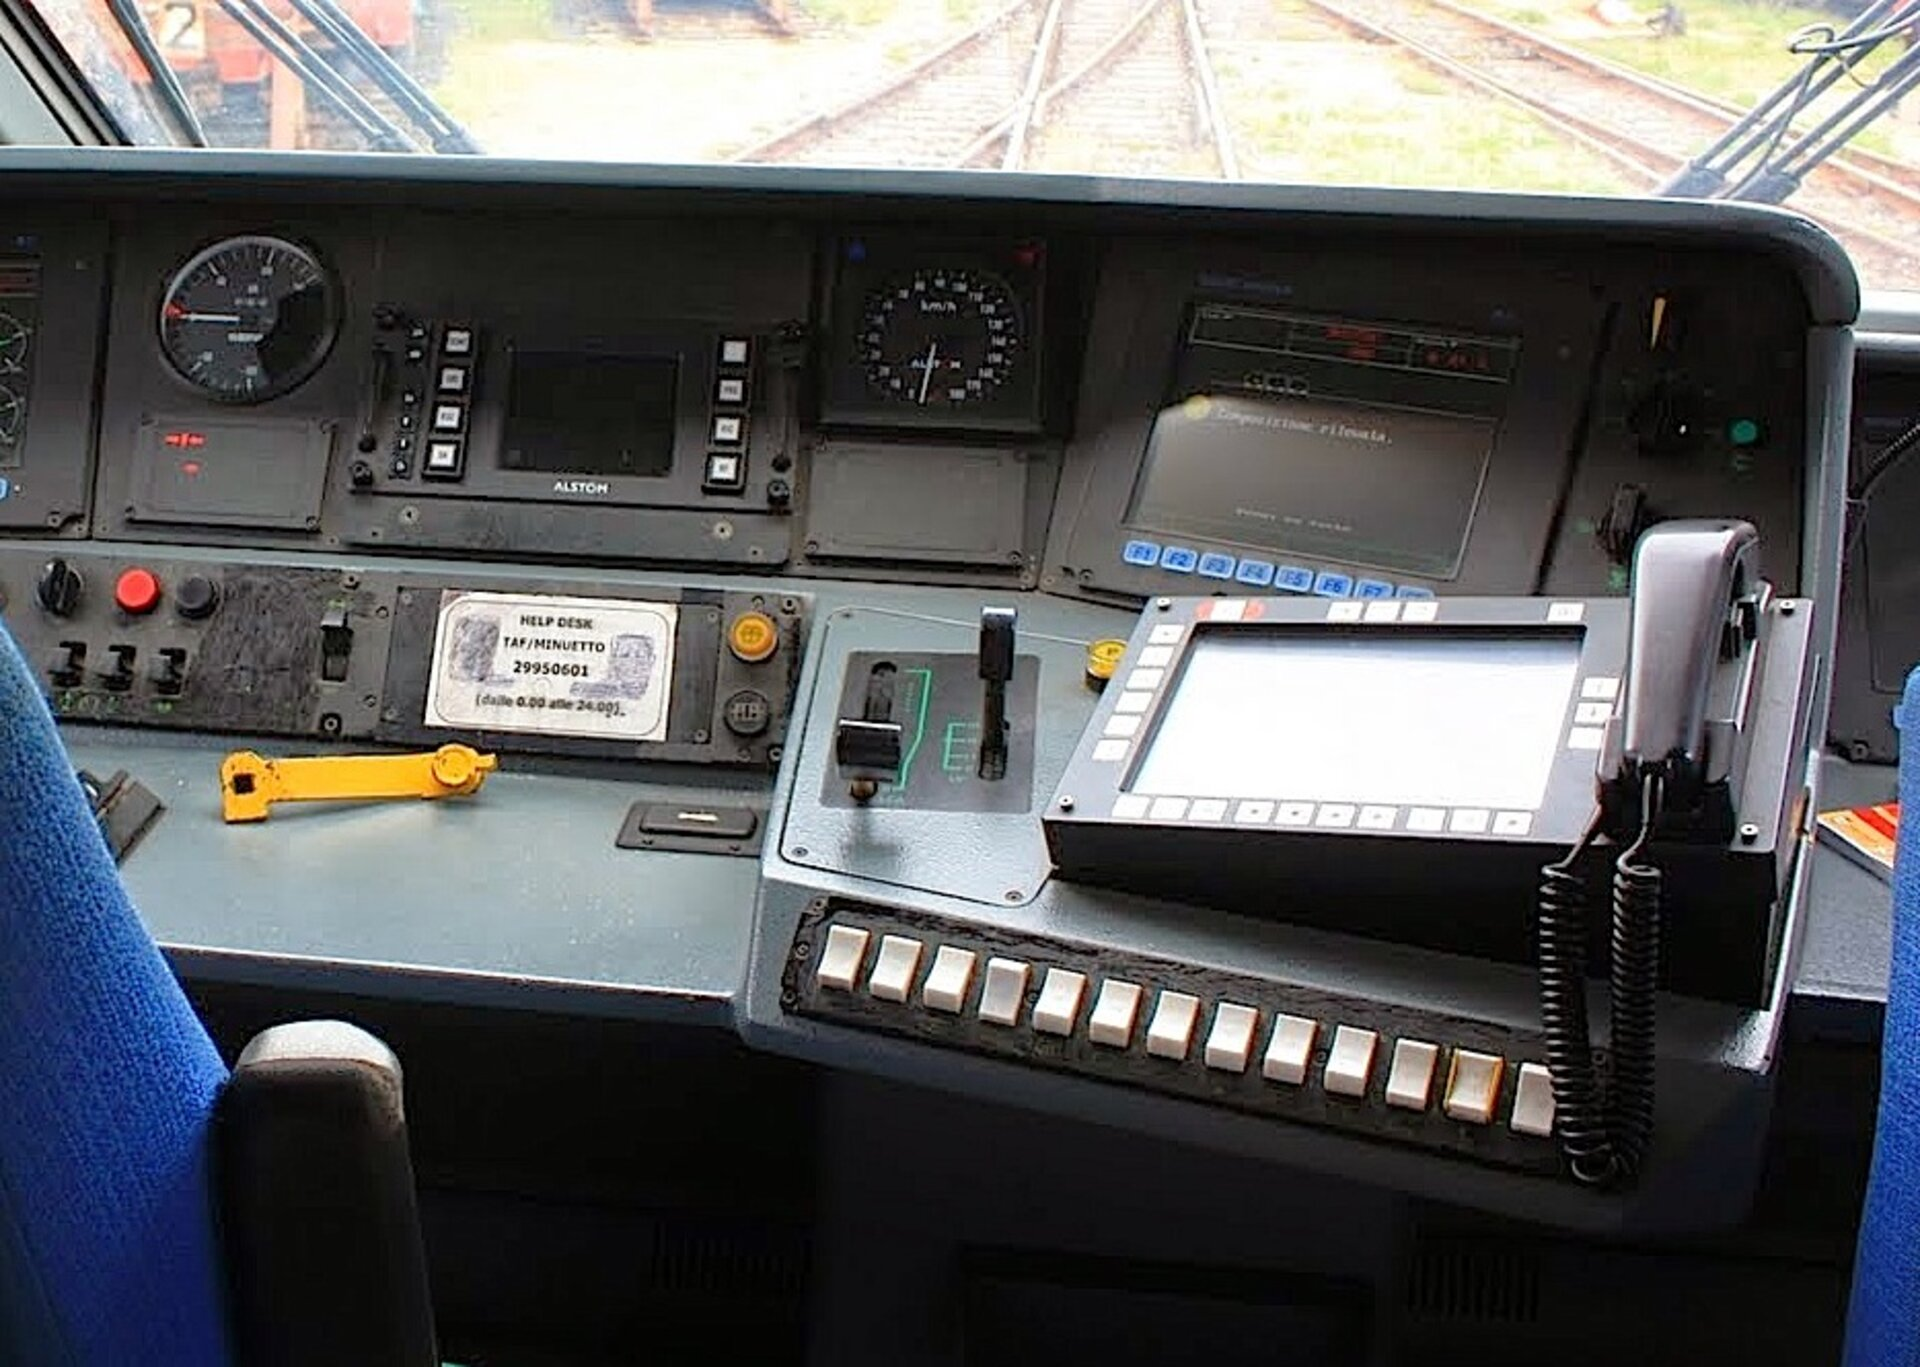 Train driver receives information via satellite